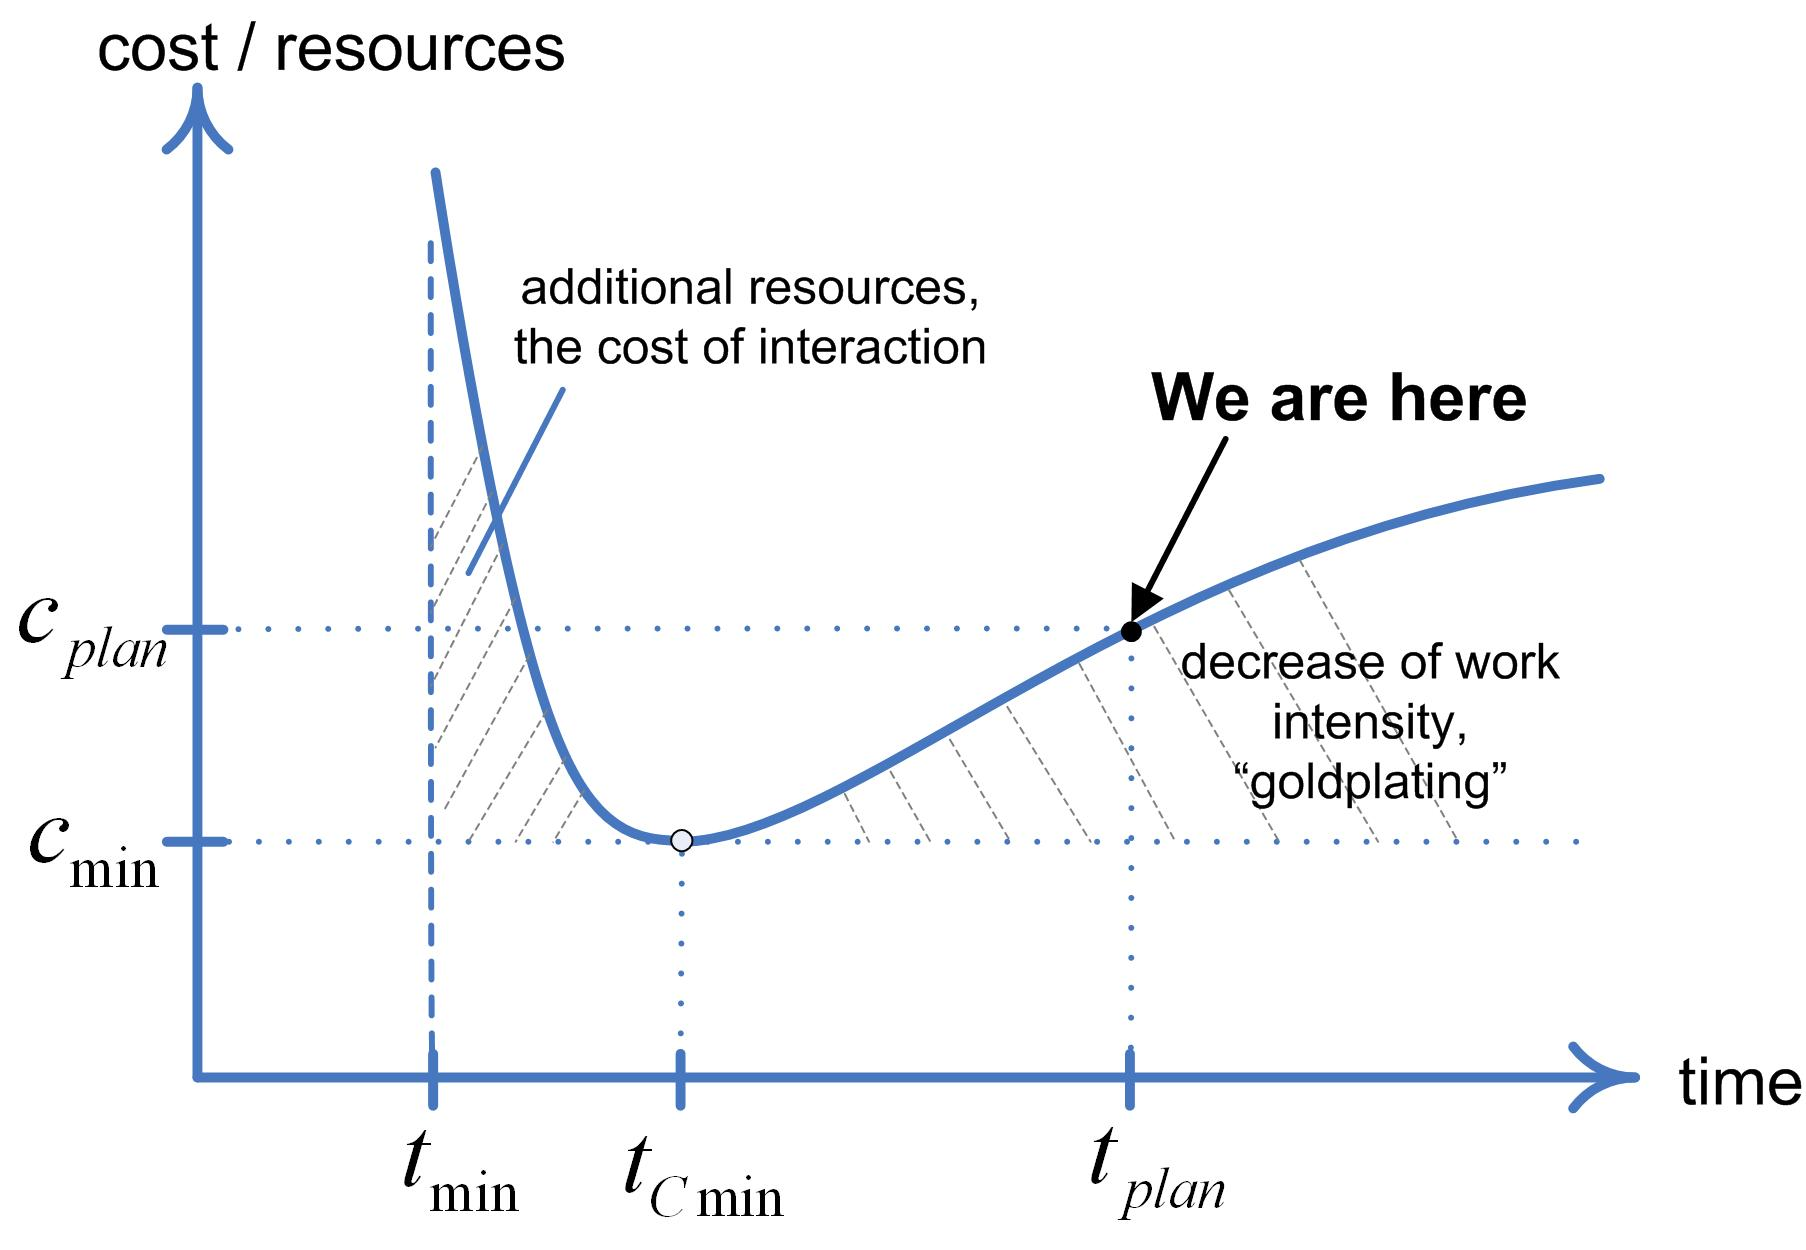 Relationship of cost and time